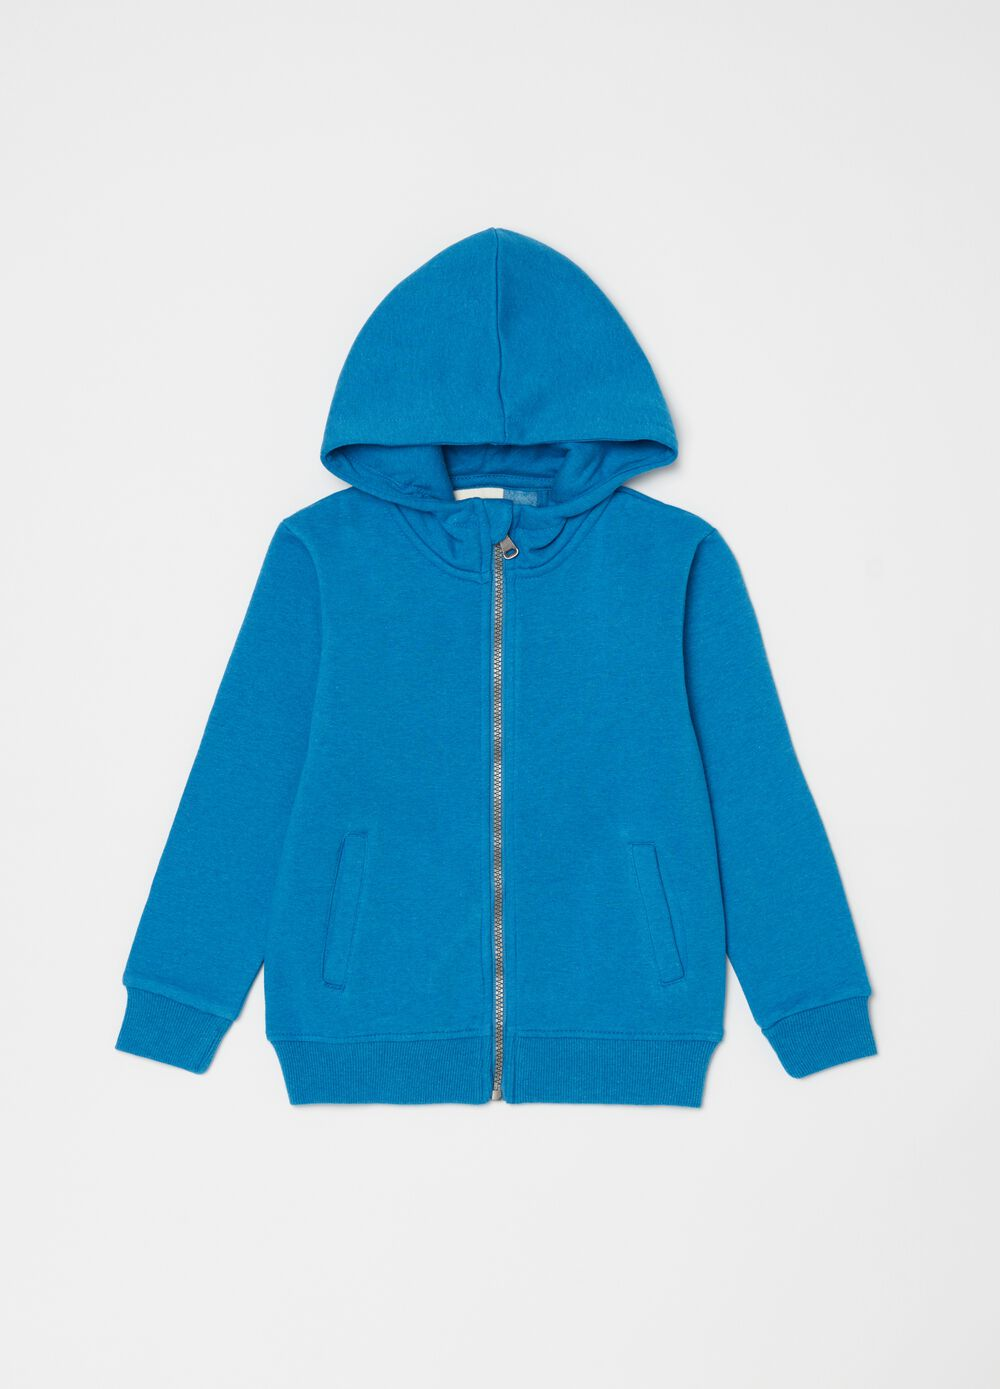 Full-zip sweatshirt with hood